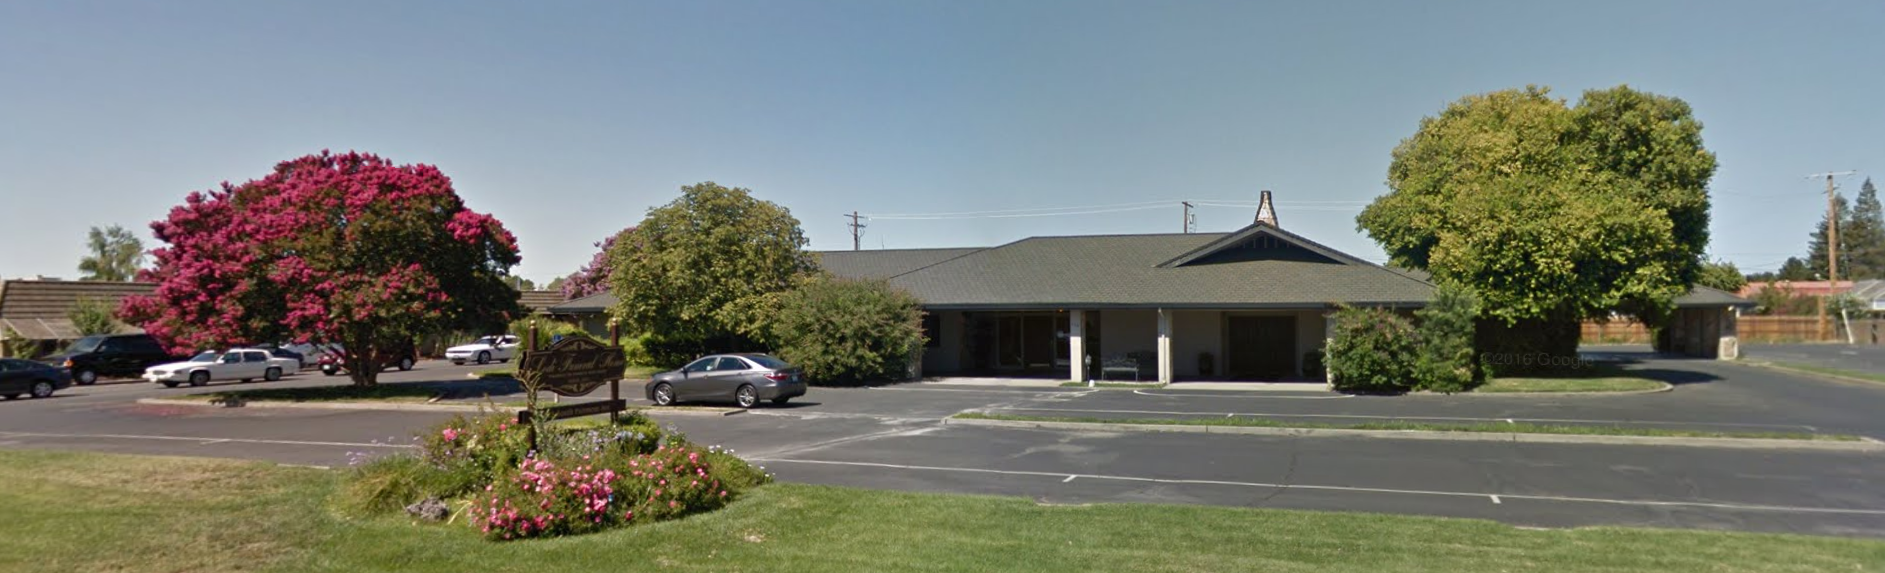 Salas Saml D Lodi Funeral Home, Lodi, Ca  Funeral Zone. Flatbush Development Corporation. Dr Baronne Lafayette La New England Insurance. Advertisement Templates Free Dui St Louis. Sr22 Insurance Virginia Crm For Manufacturing. Medical Associates Of Davie Schools For Lpn. Society Of Clinical Psychology. Richmond Heating And Air Conditioning. How Can I Create A Social Networking Site